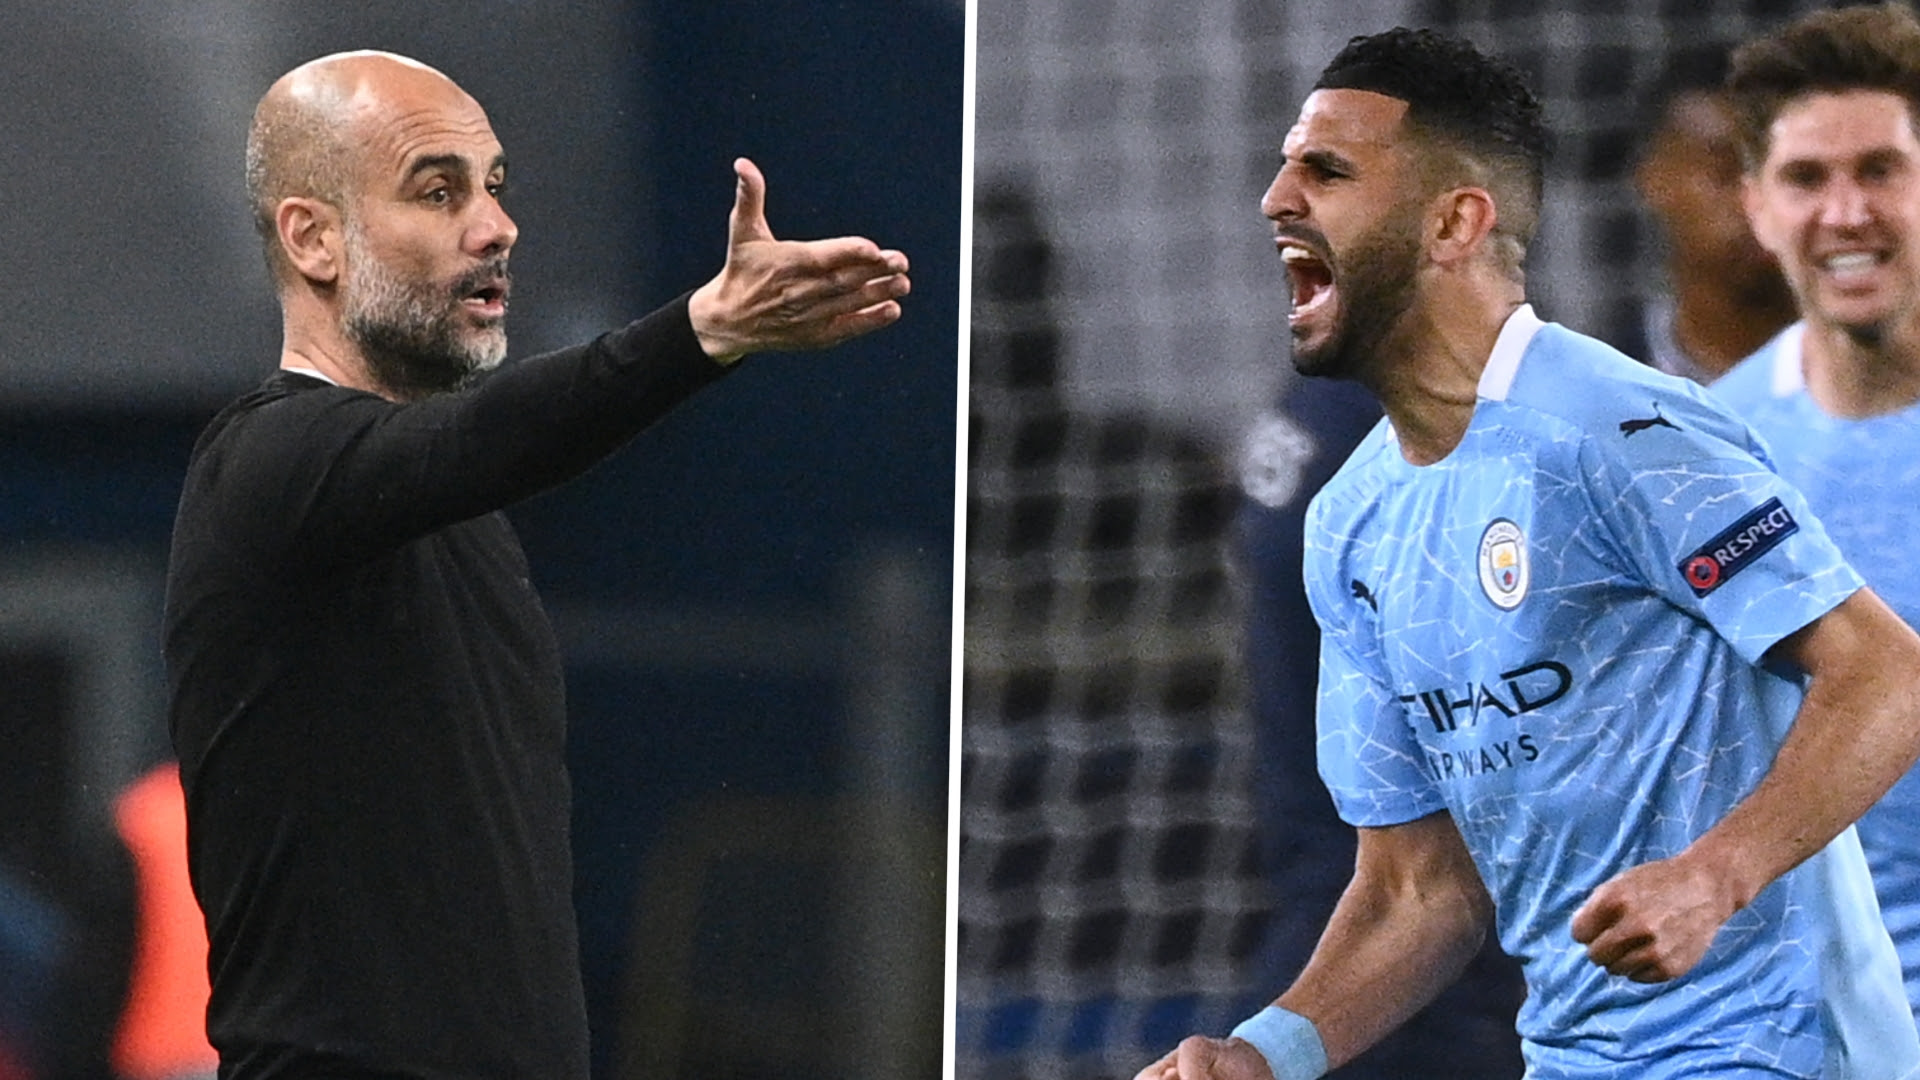 Guardiola silences the critics as Man City reaches new heights in Champions League